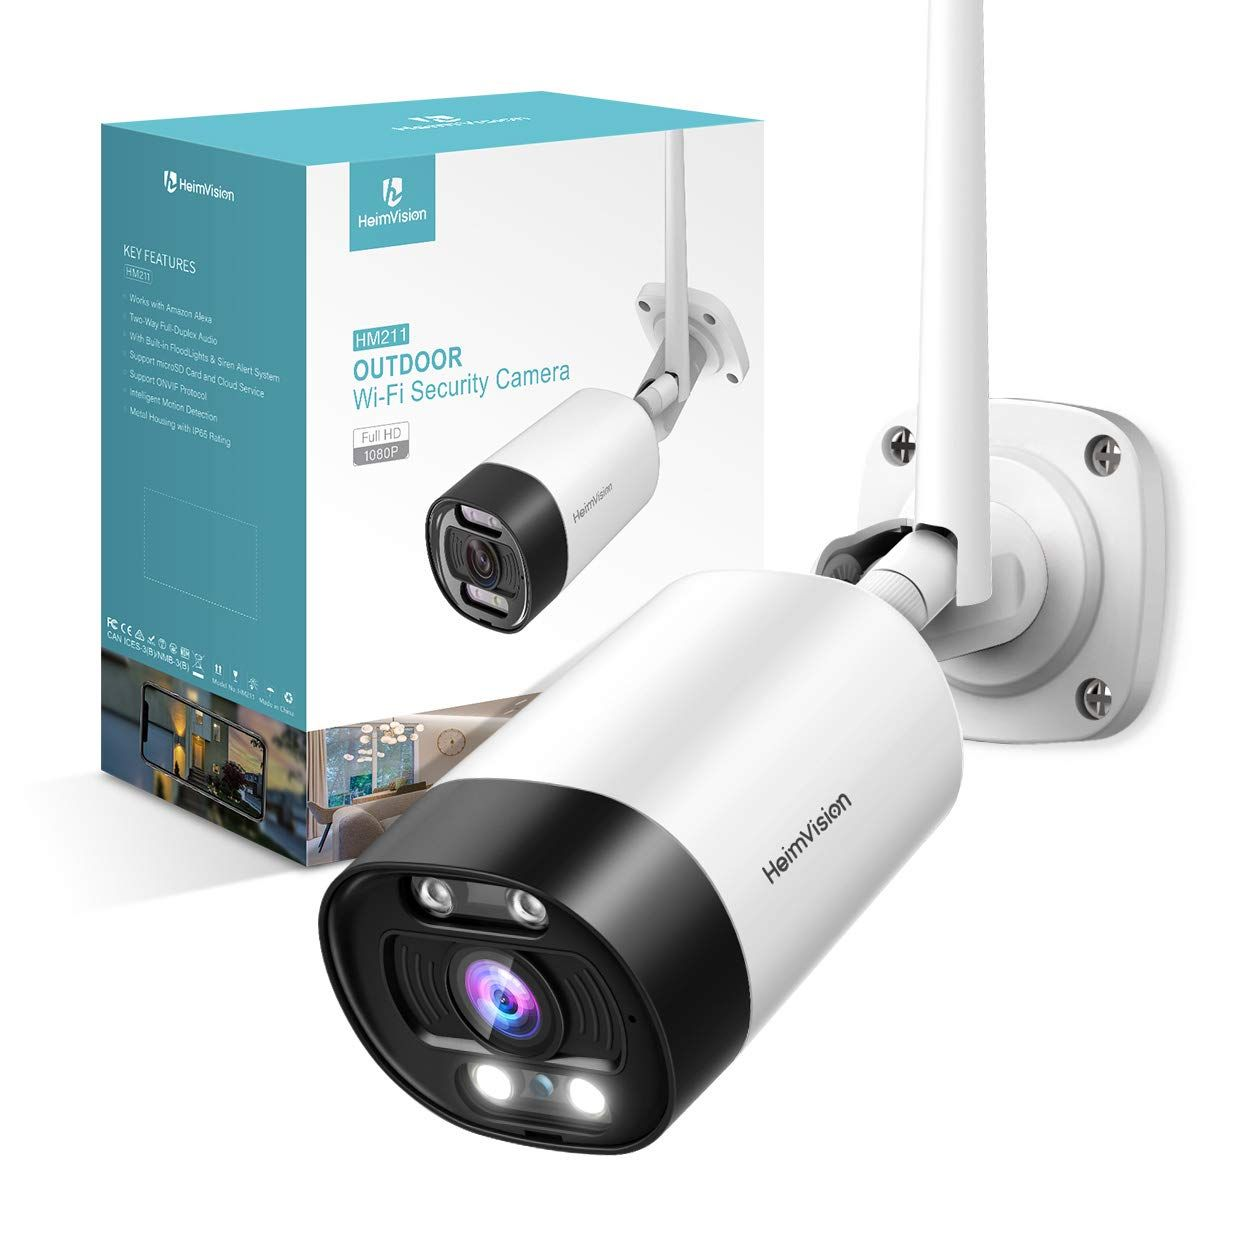 Night Vision, 1080p Full HD Wi-Fi Camera with Audio Outdoor Security Camera